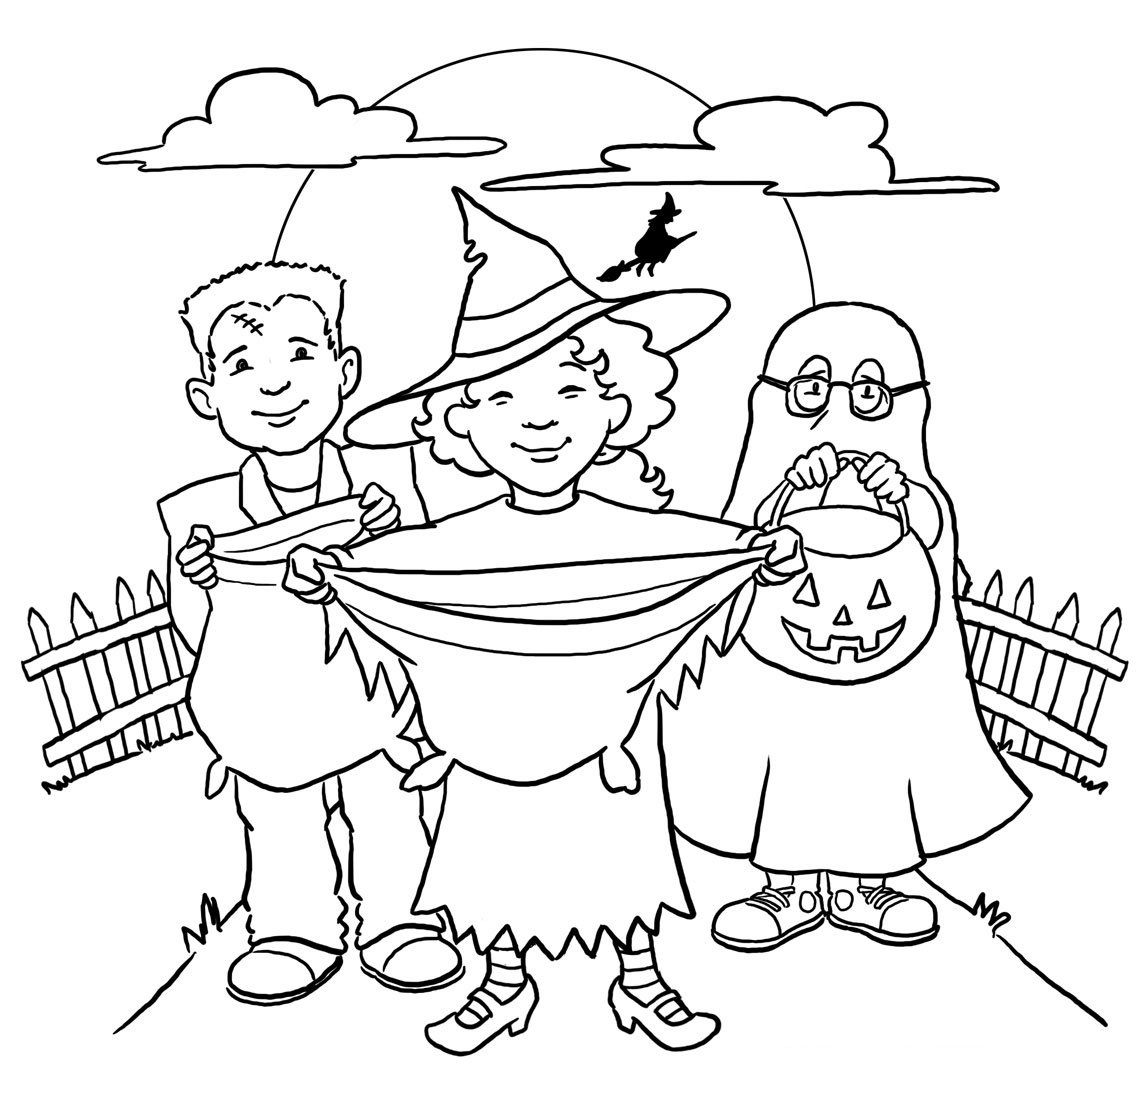 Trick Or Treat Bag Kids Halloween Coloring Pages Free Printable Coloring Pages For Kids